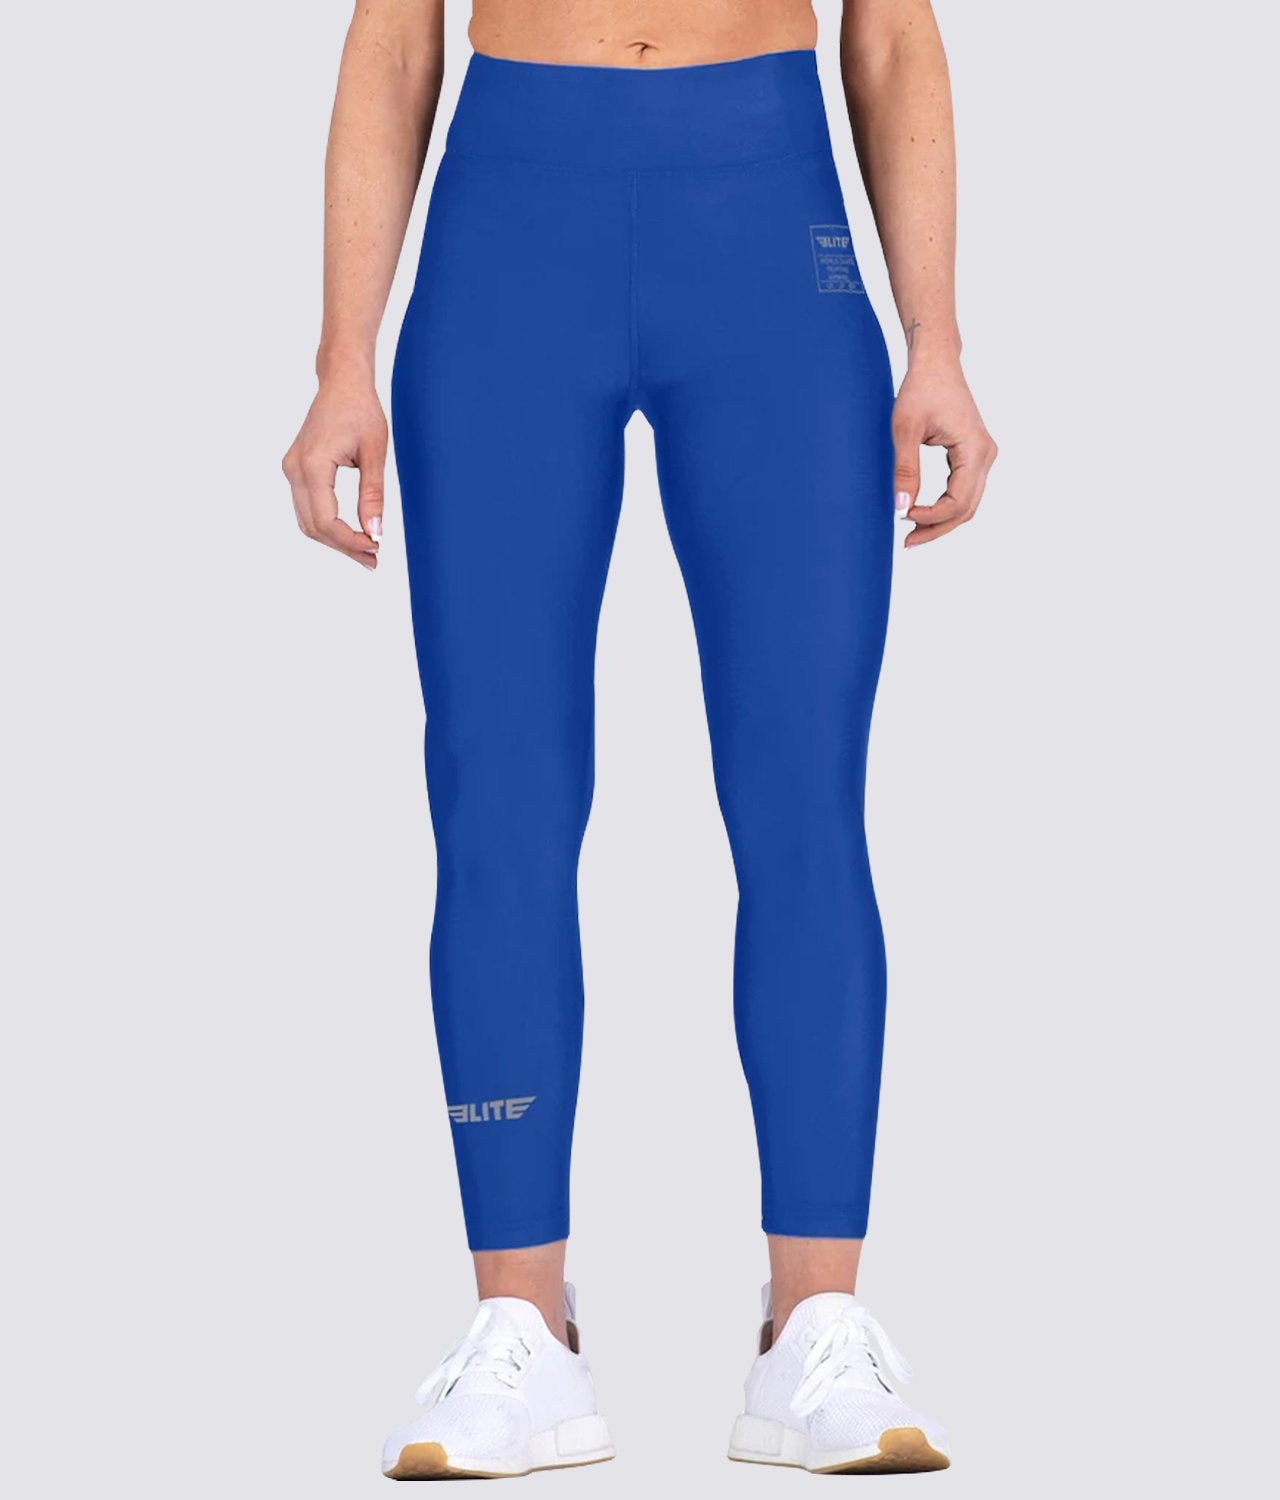 Elite Sports Blue Women Compression MMA Spat Pants